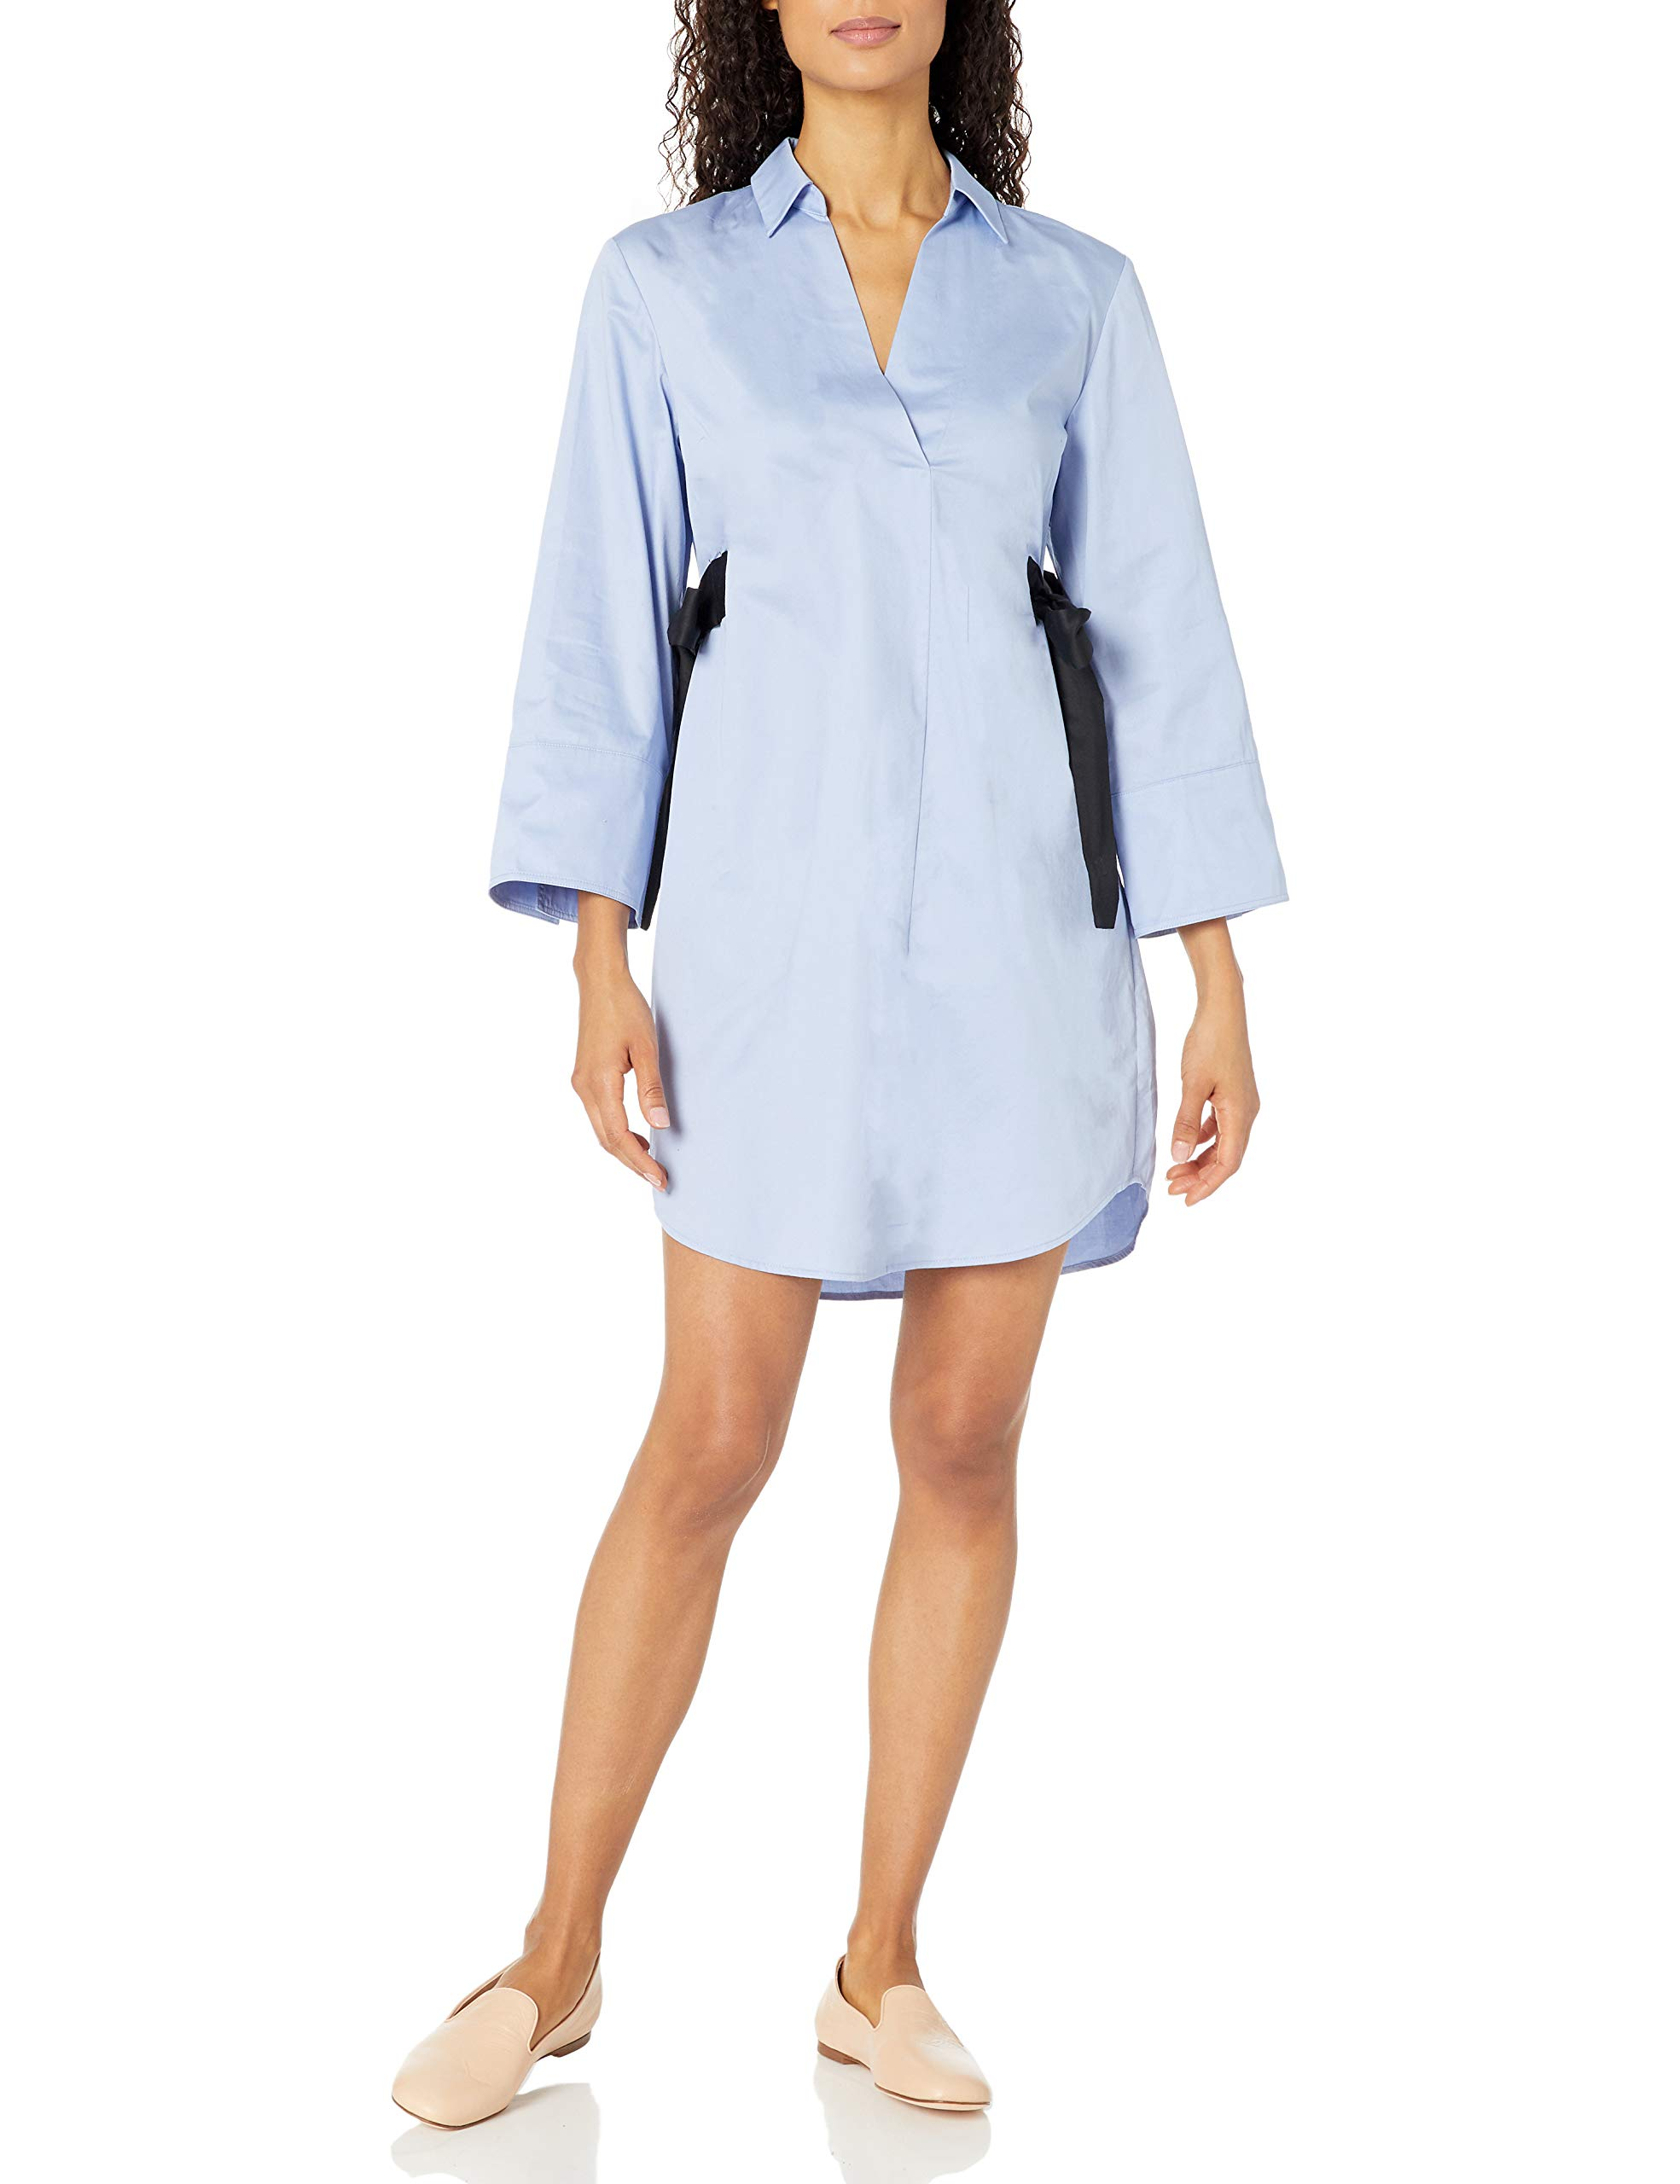 Available at Amazon: Nine West Women's Cotton Shirt Dress with Contrast Ties at Waist